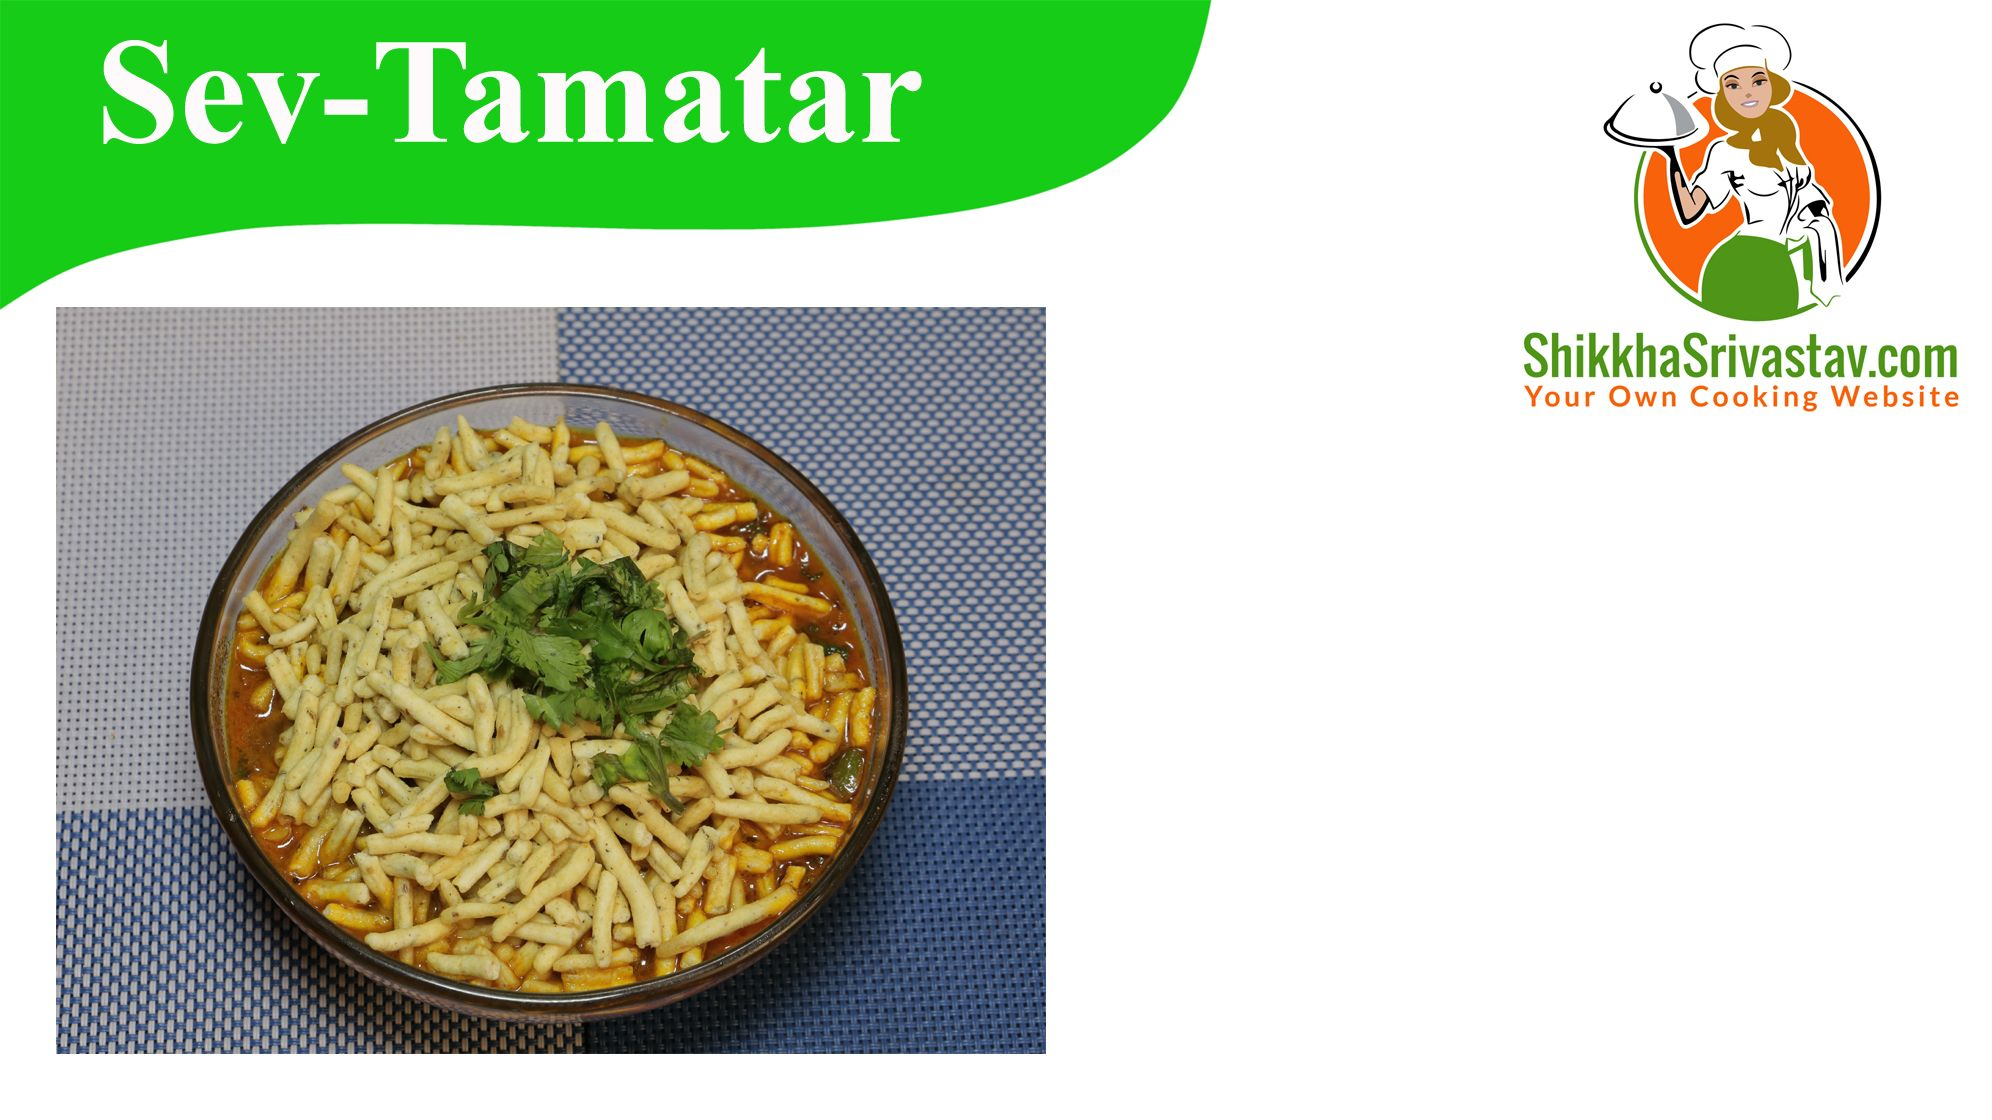 Dhaba Style Sev Tamatar ki Sabzi Recipe in Hindi. How to make Sev Tamatar ki Sabzi at Home in Hindi Language with step by step preparation.